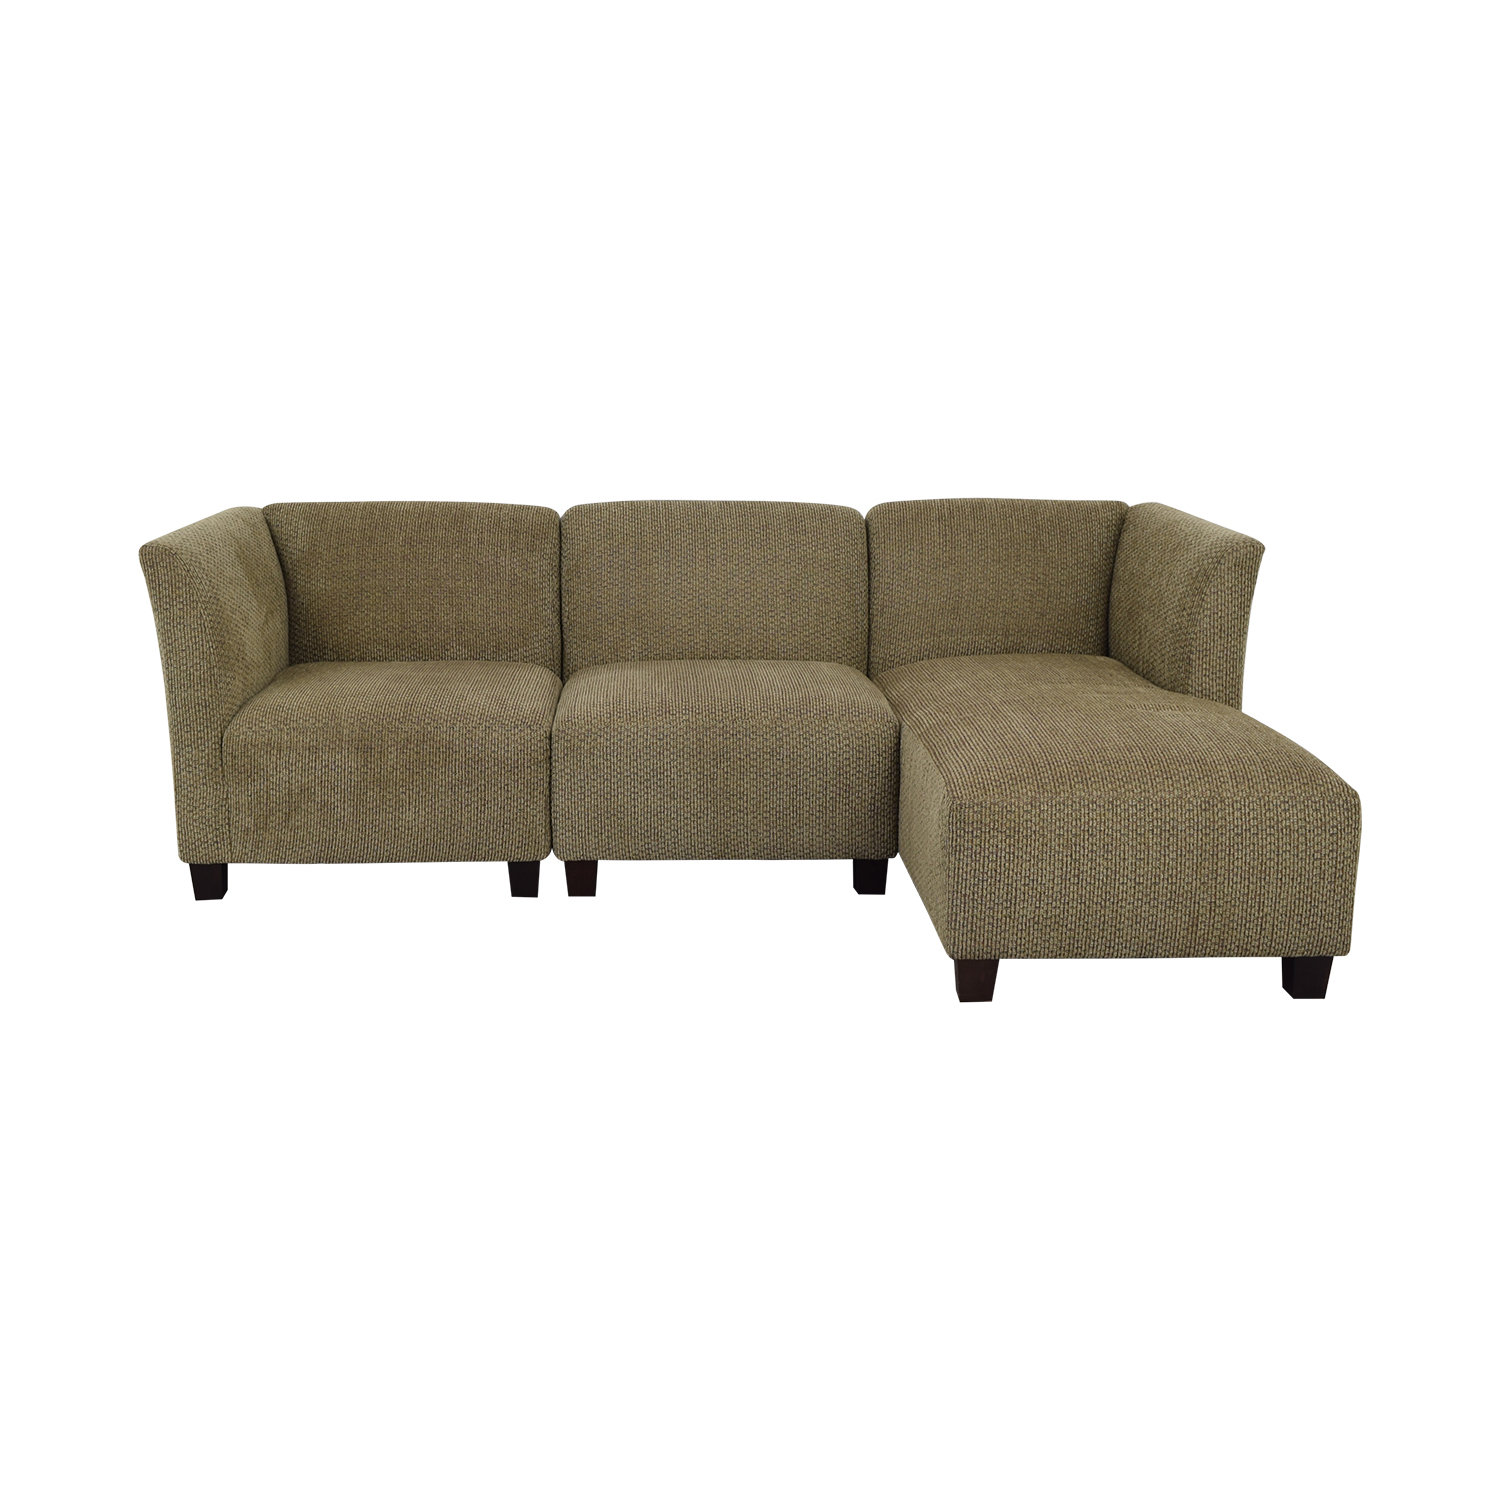 buy Rowe Furniture Rowe Furniture Sectional Sofa online